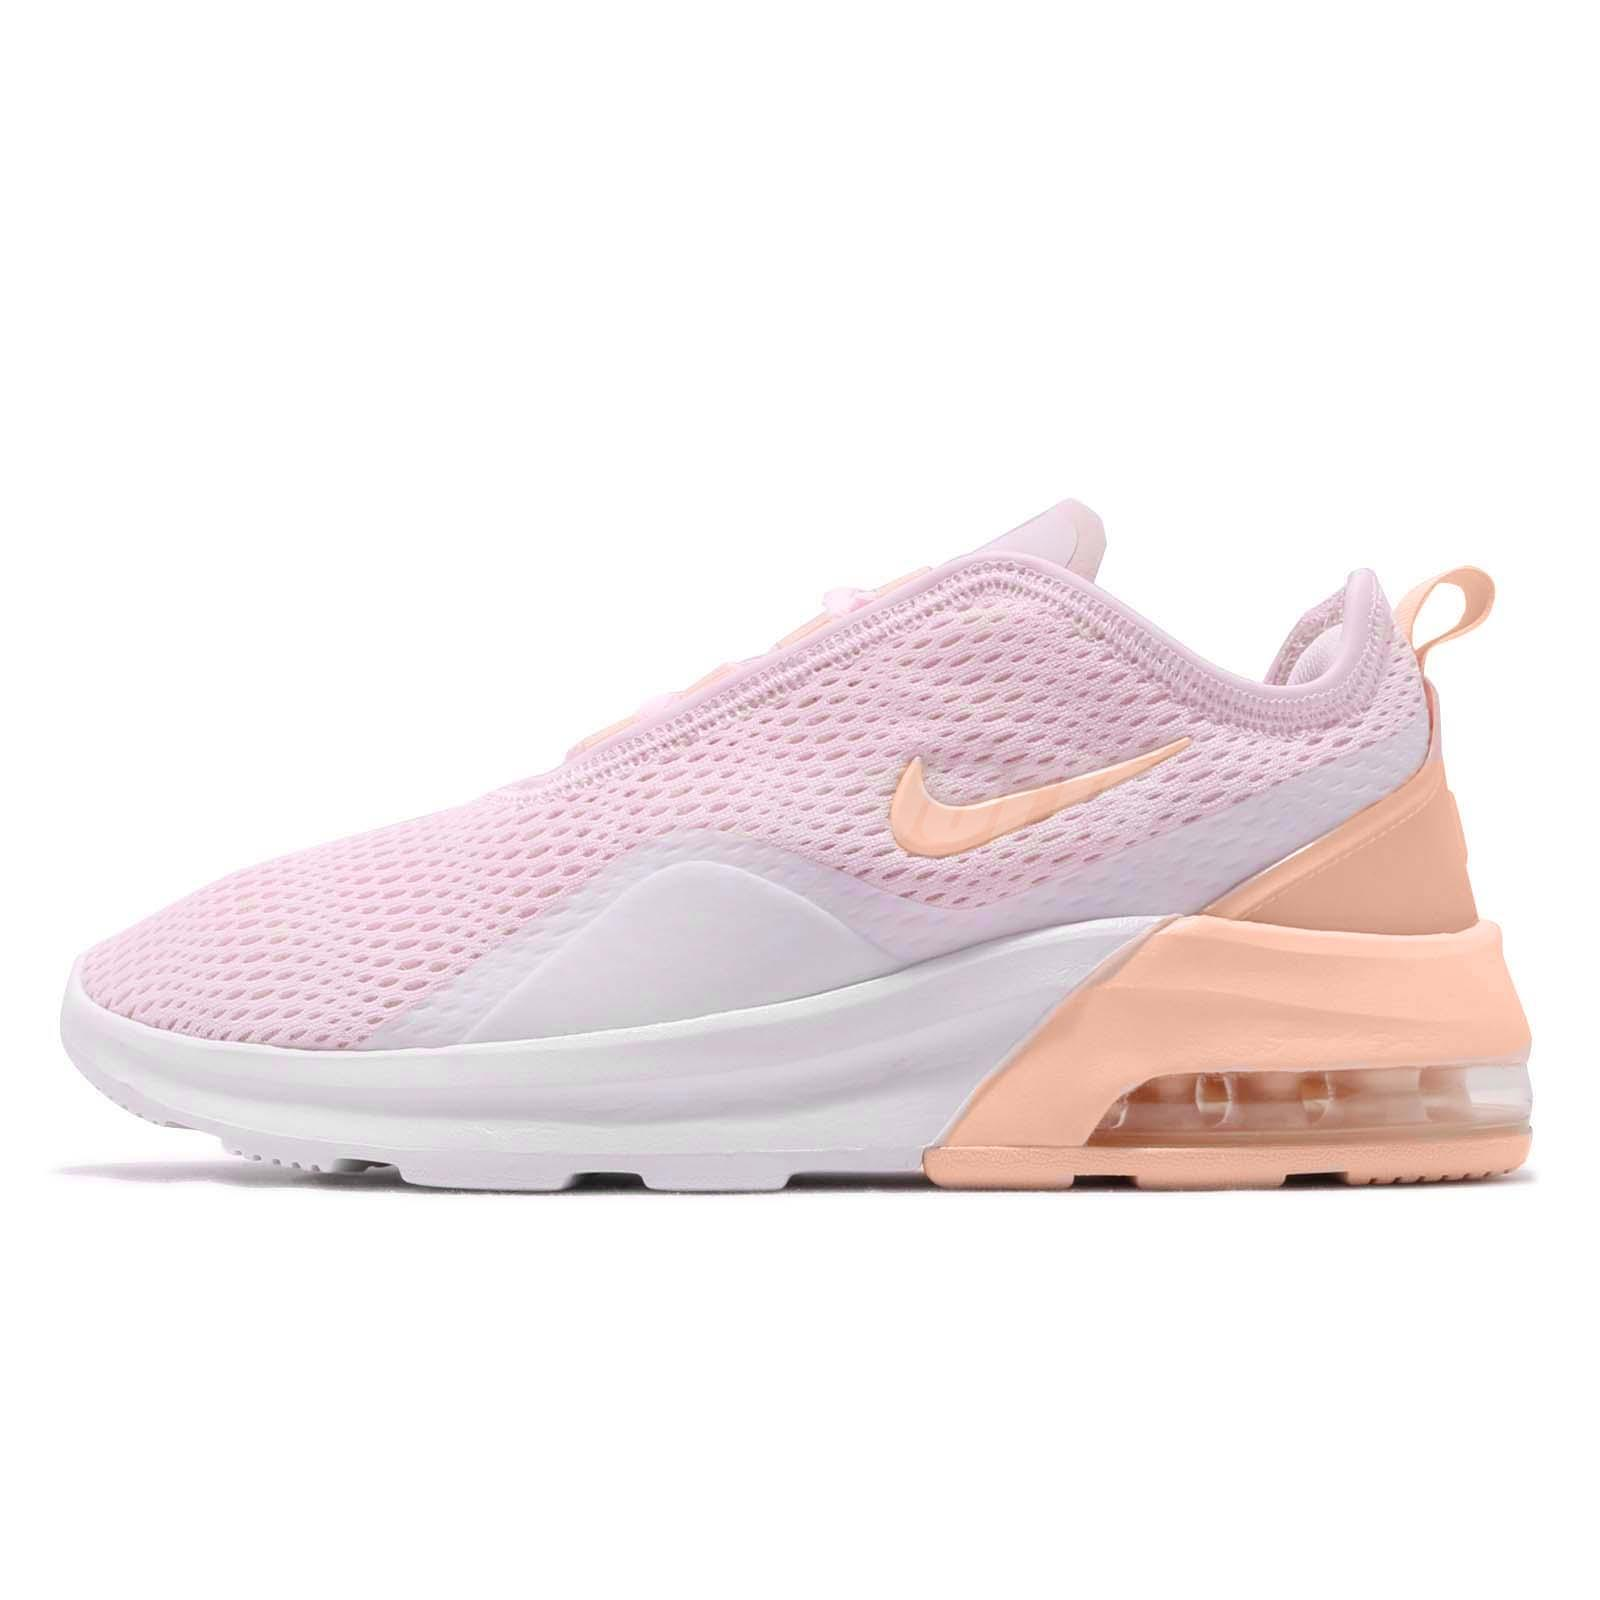 Details about Nike Wmns Air Max Motion 2 Pale Pink Washed Coral Women  Running Shoes AO0352-600